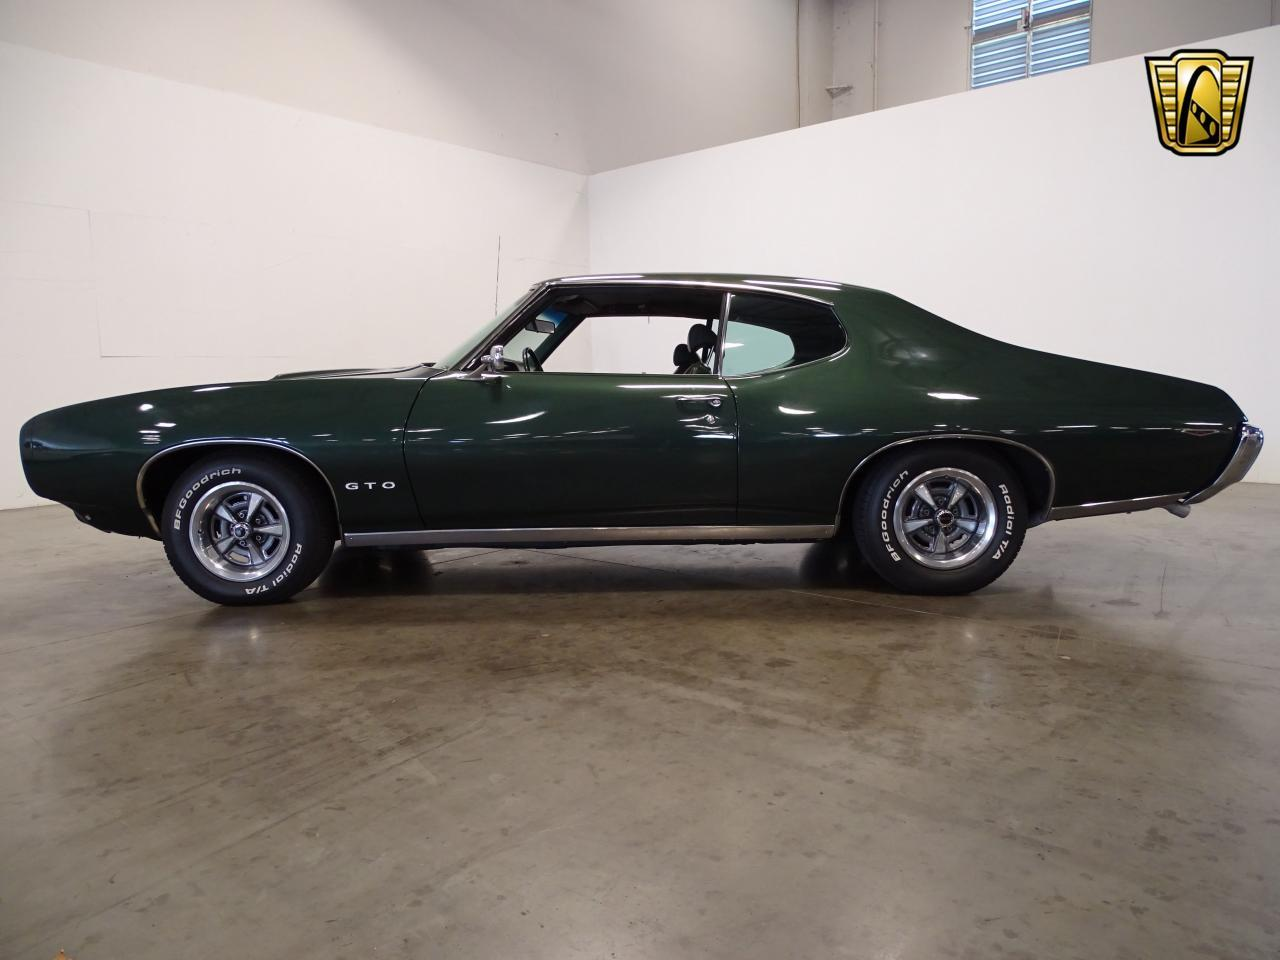 Large Picture of 1969 GTO located in Tennessee - $31,995.00 Offered by Gateway Classic Cars - Nashville - OGZL